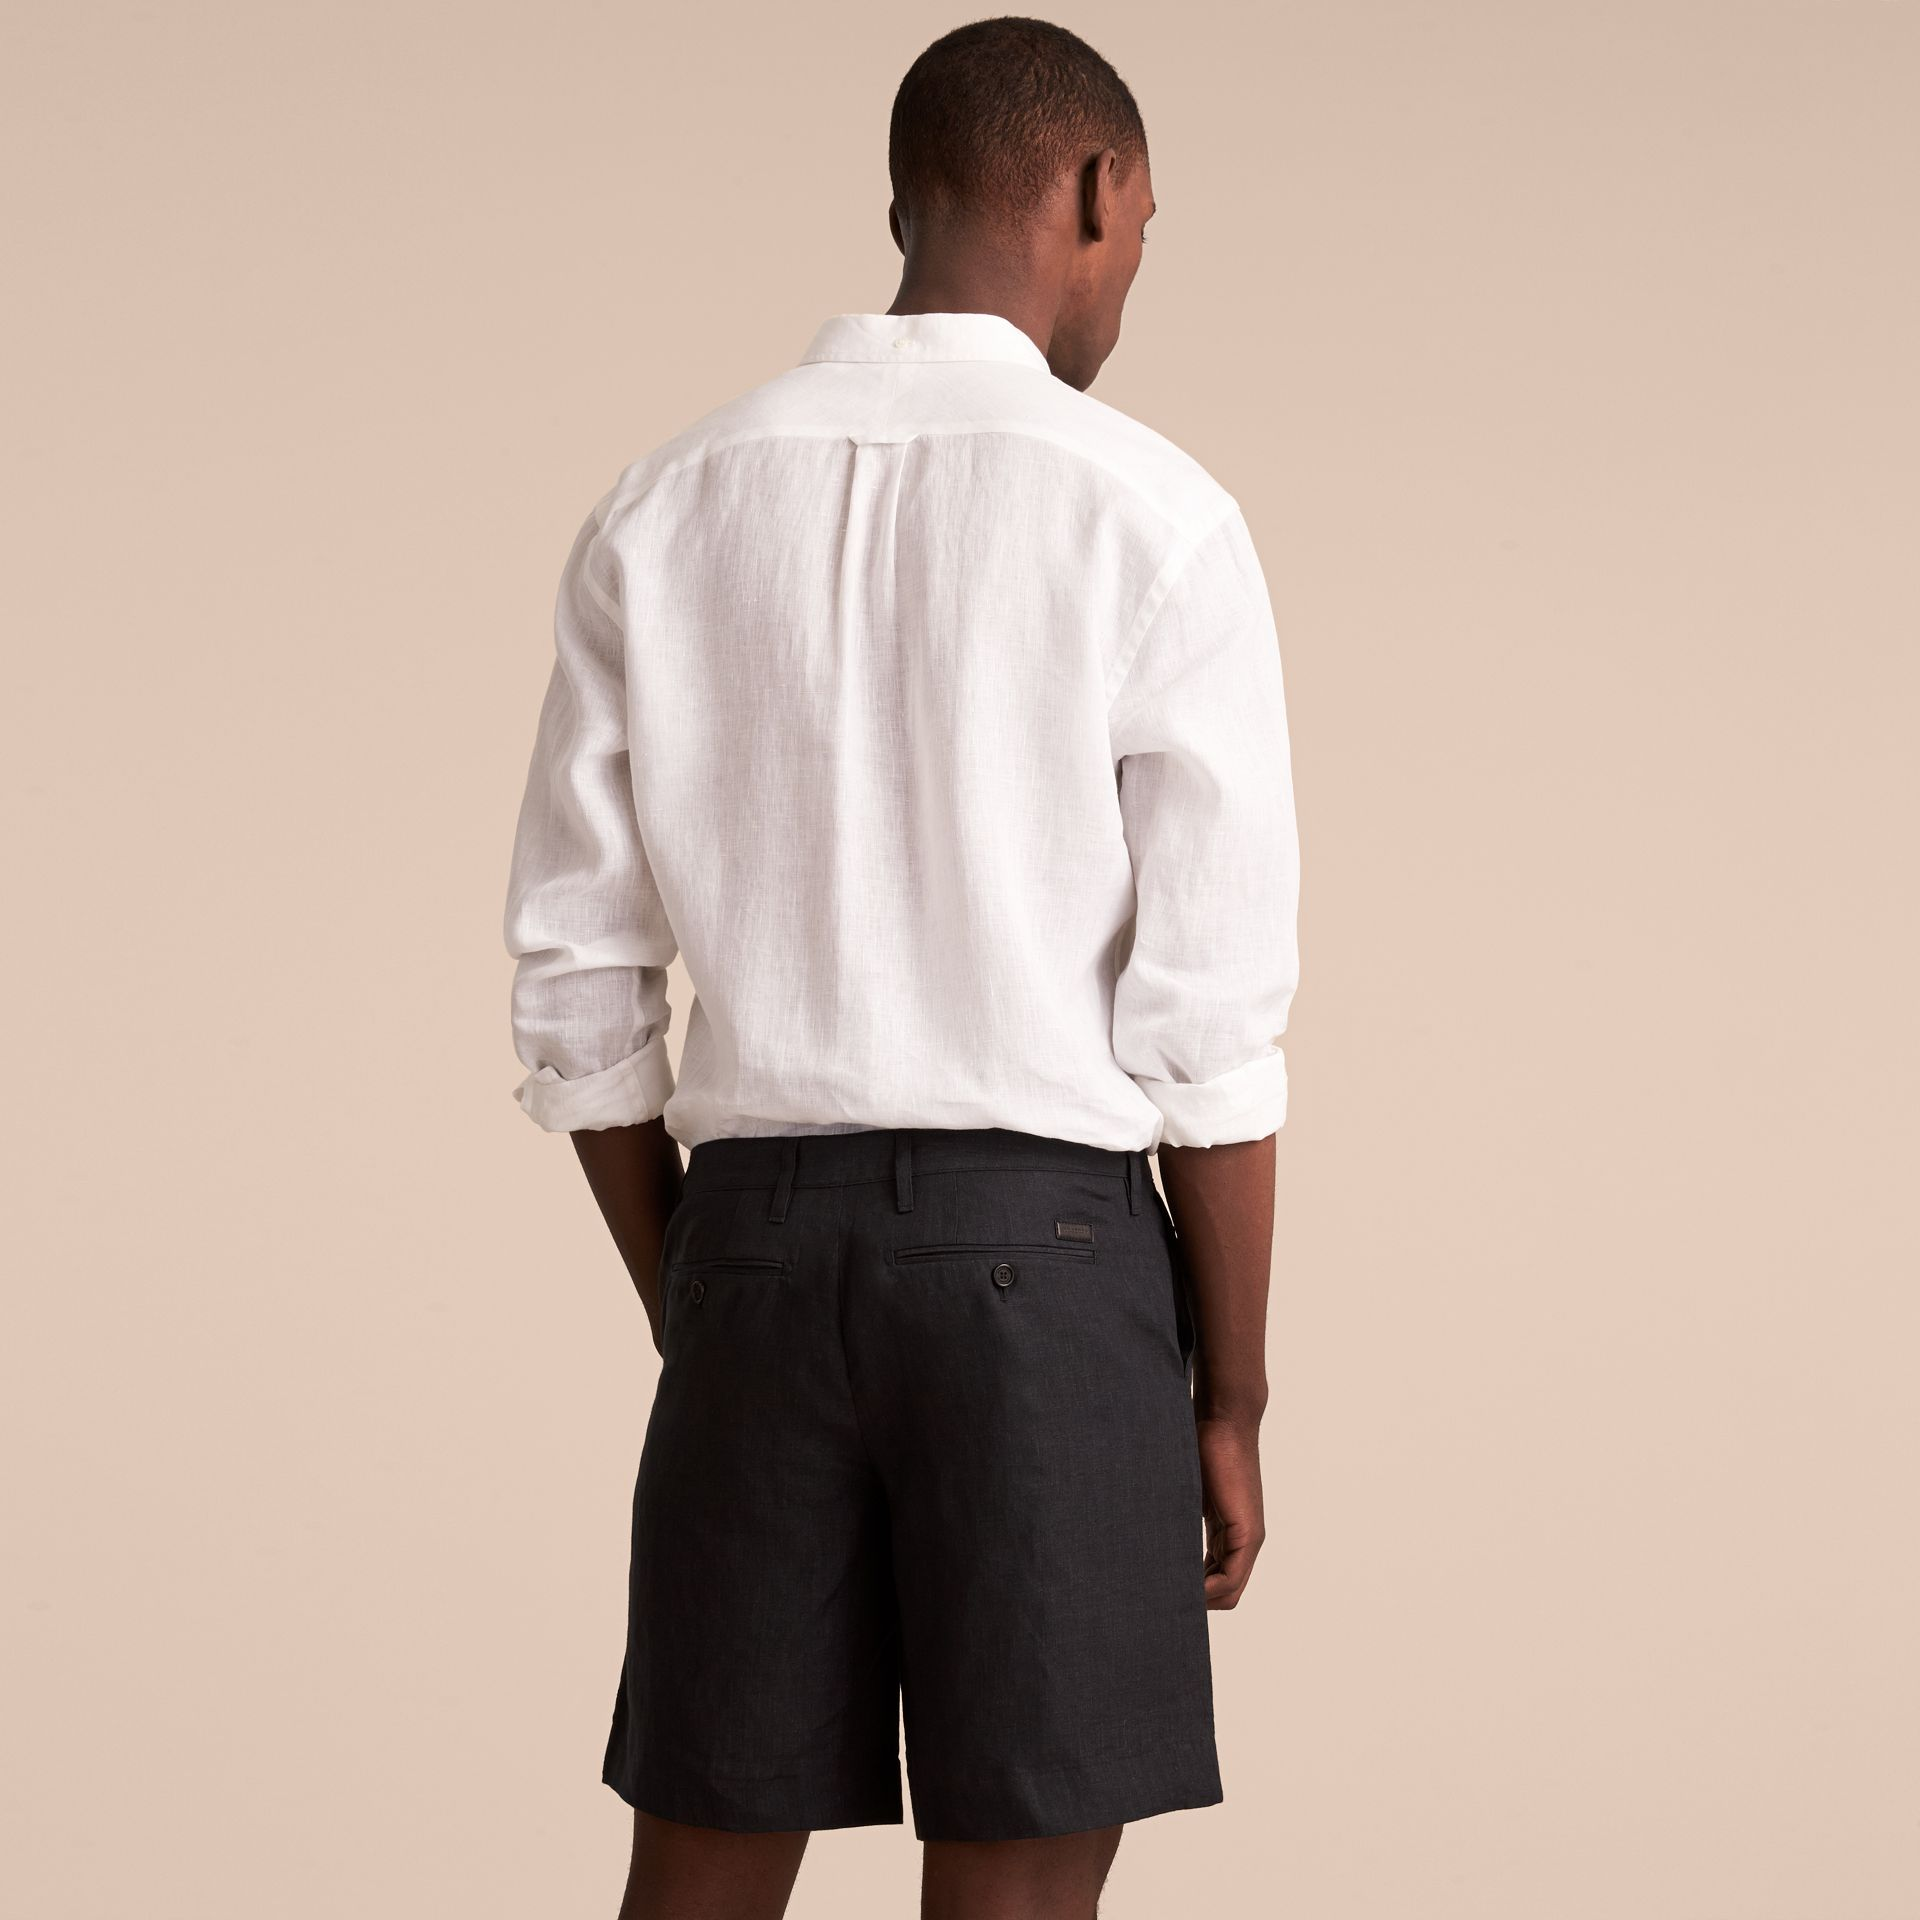 Lightweight Linen Shorts in Charcoal - Men | Burberry - gallery image 3